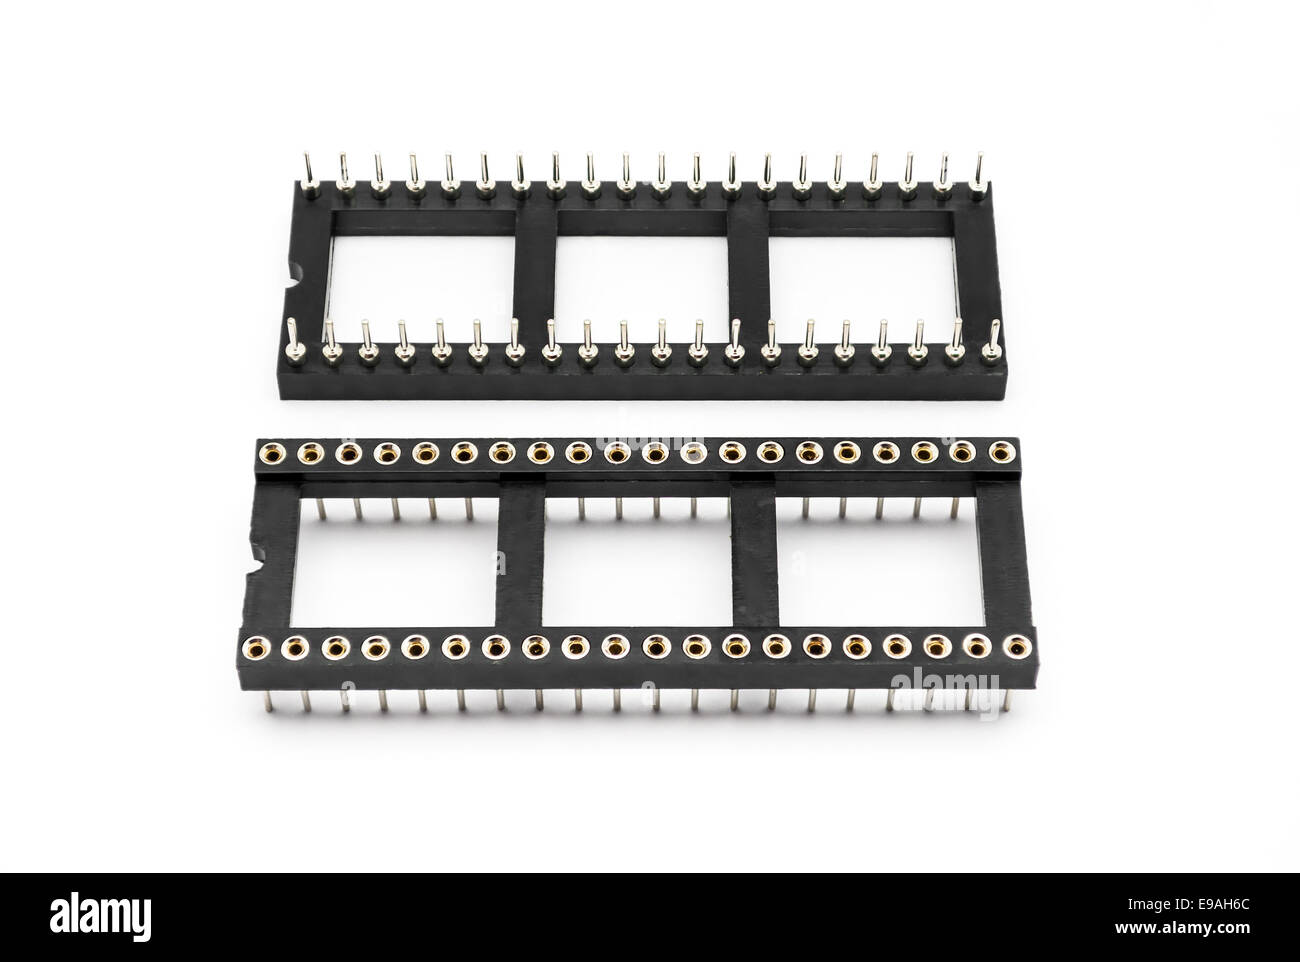 Integrated Circuit Ic And Socket Stock Photos 8 Pin Or 2x4 Round Hole Sockets Image